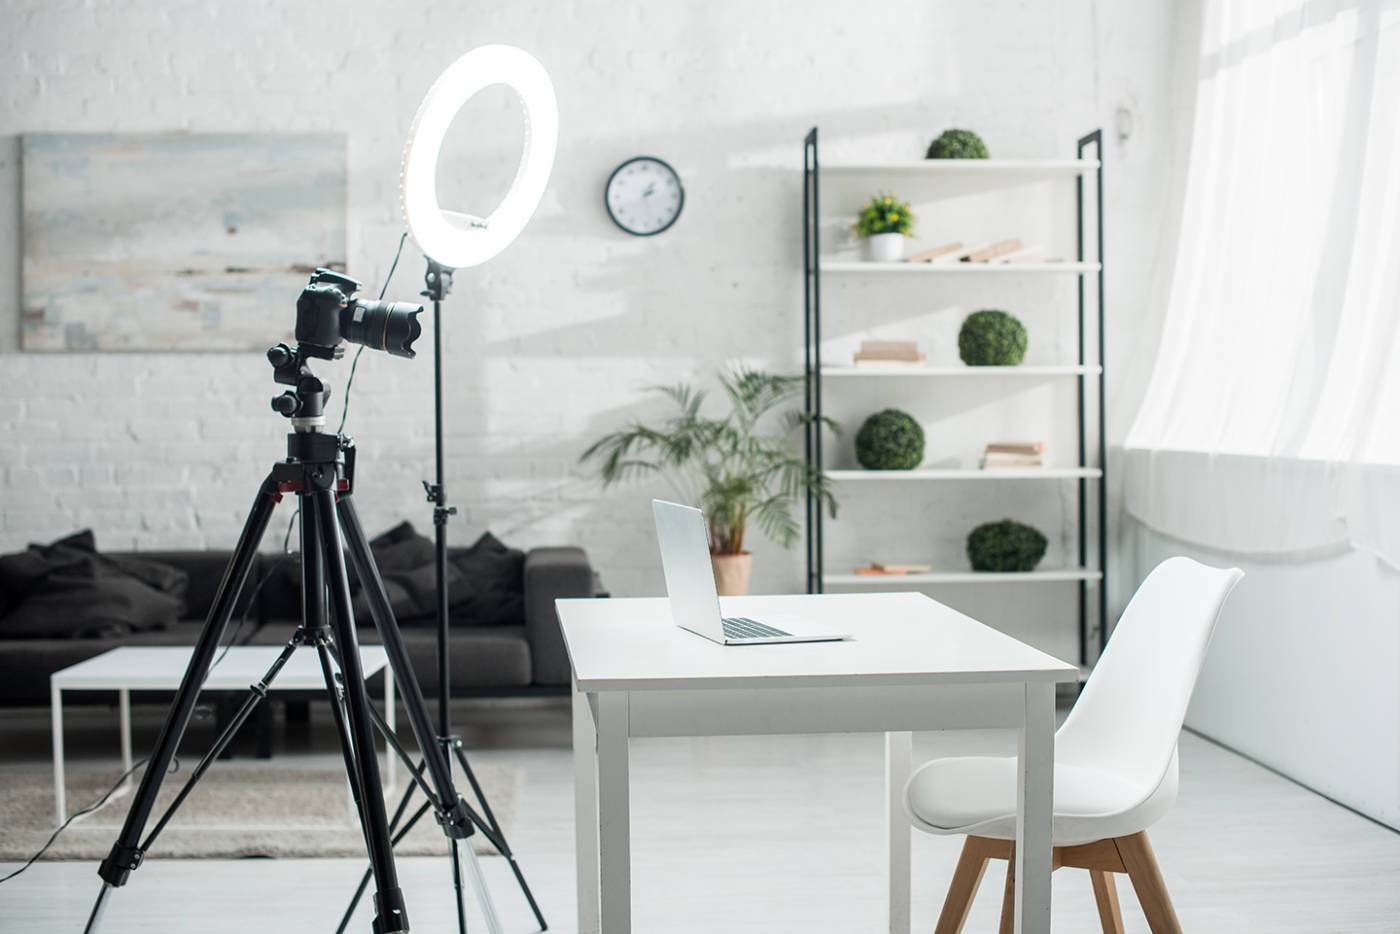 Image of room with video light and camera